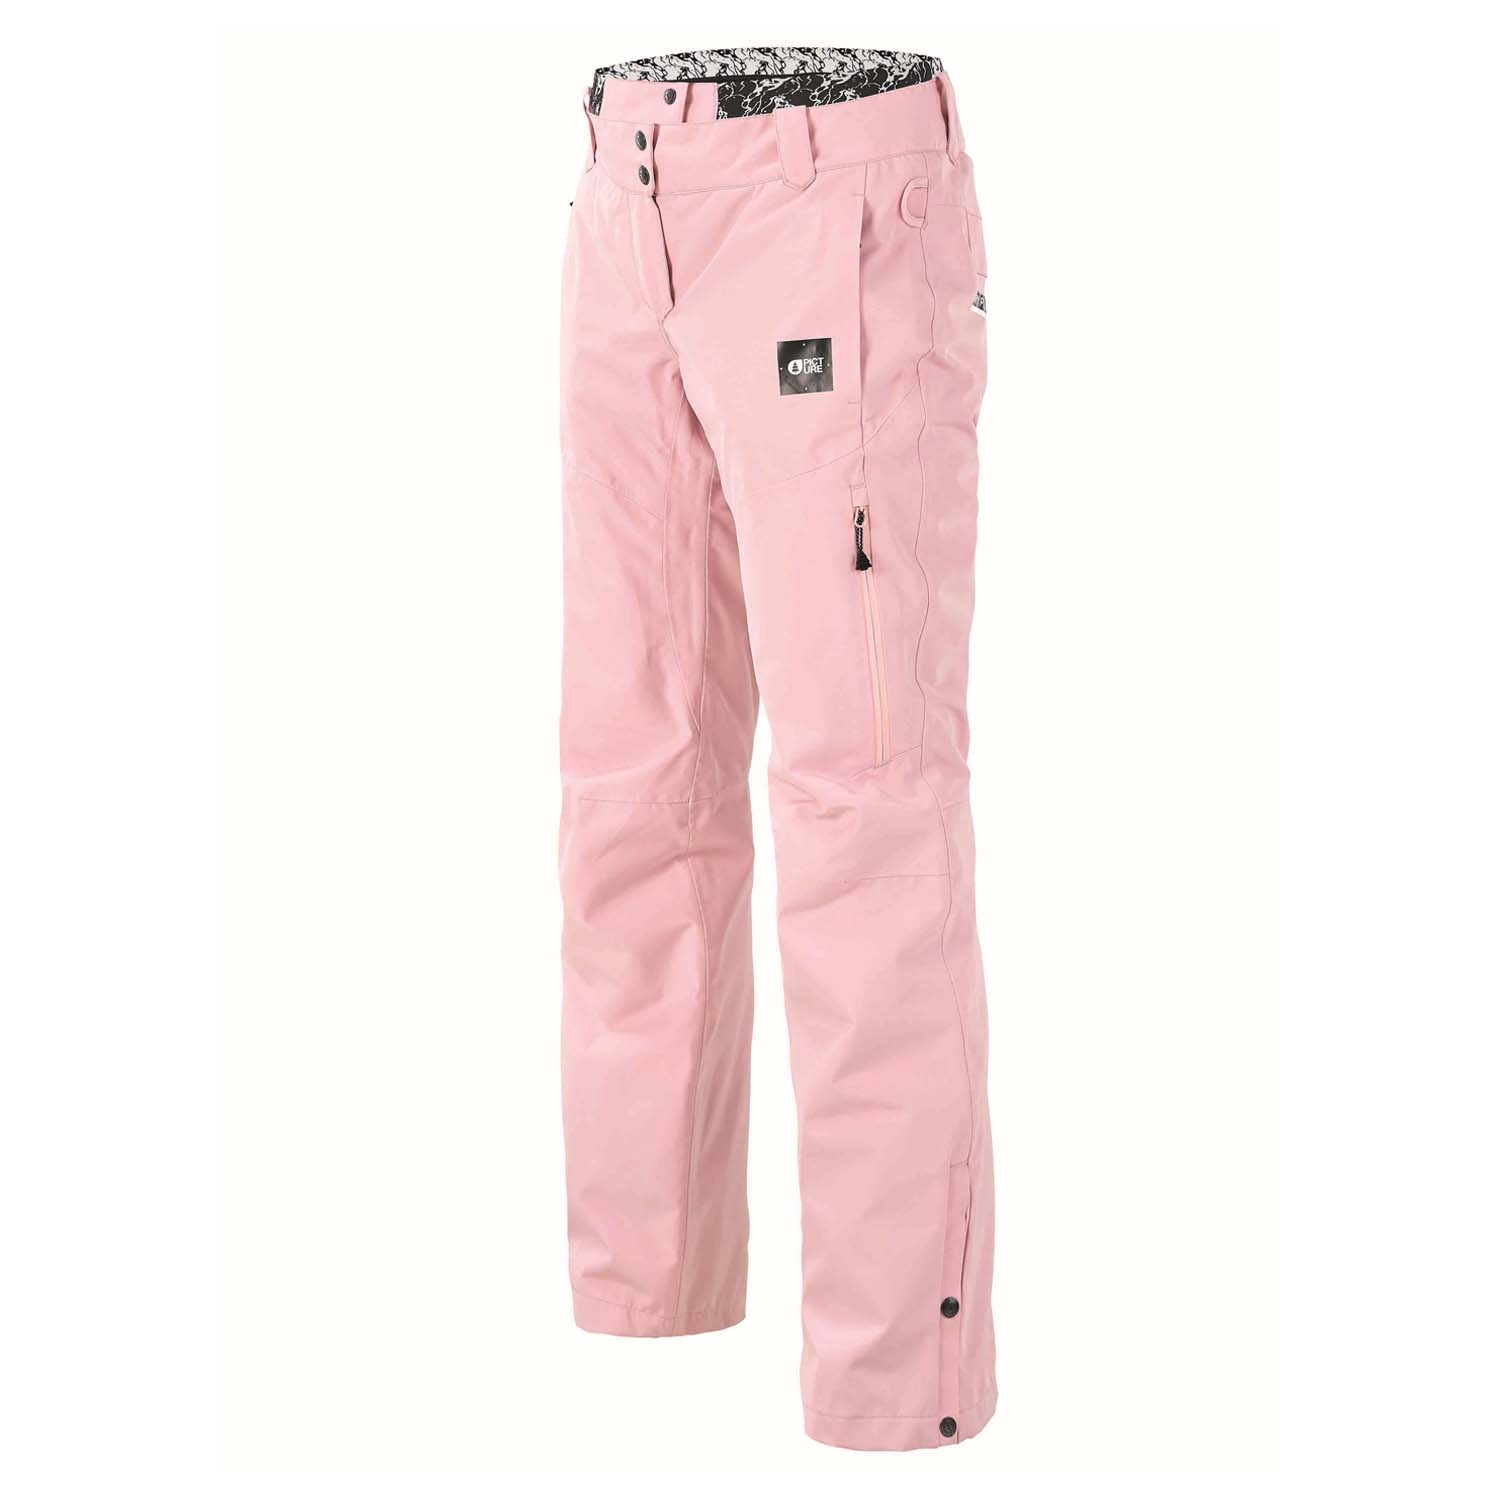 Picture Expedition Exa Pant Pink 2020